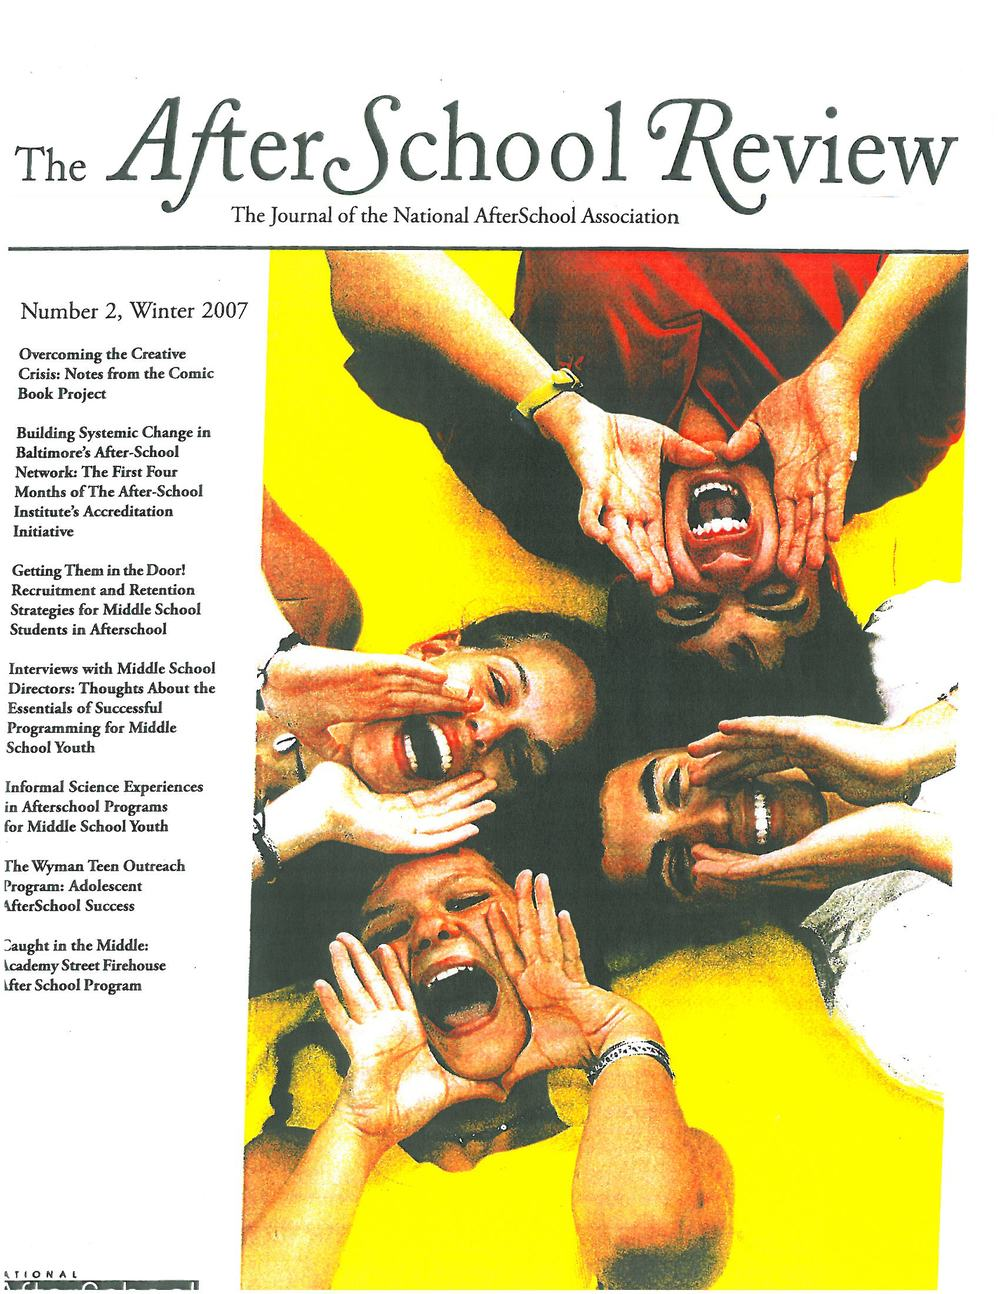 AFTERSCHOOL_REVIEW_ARTICLE[1]_Page_1.jpg